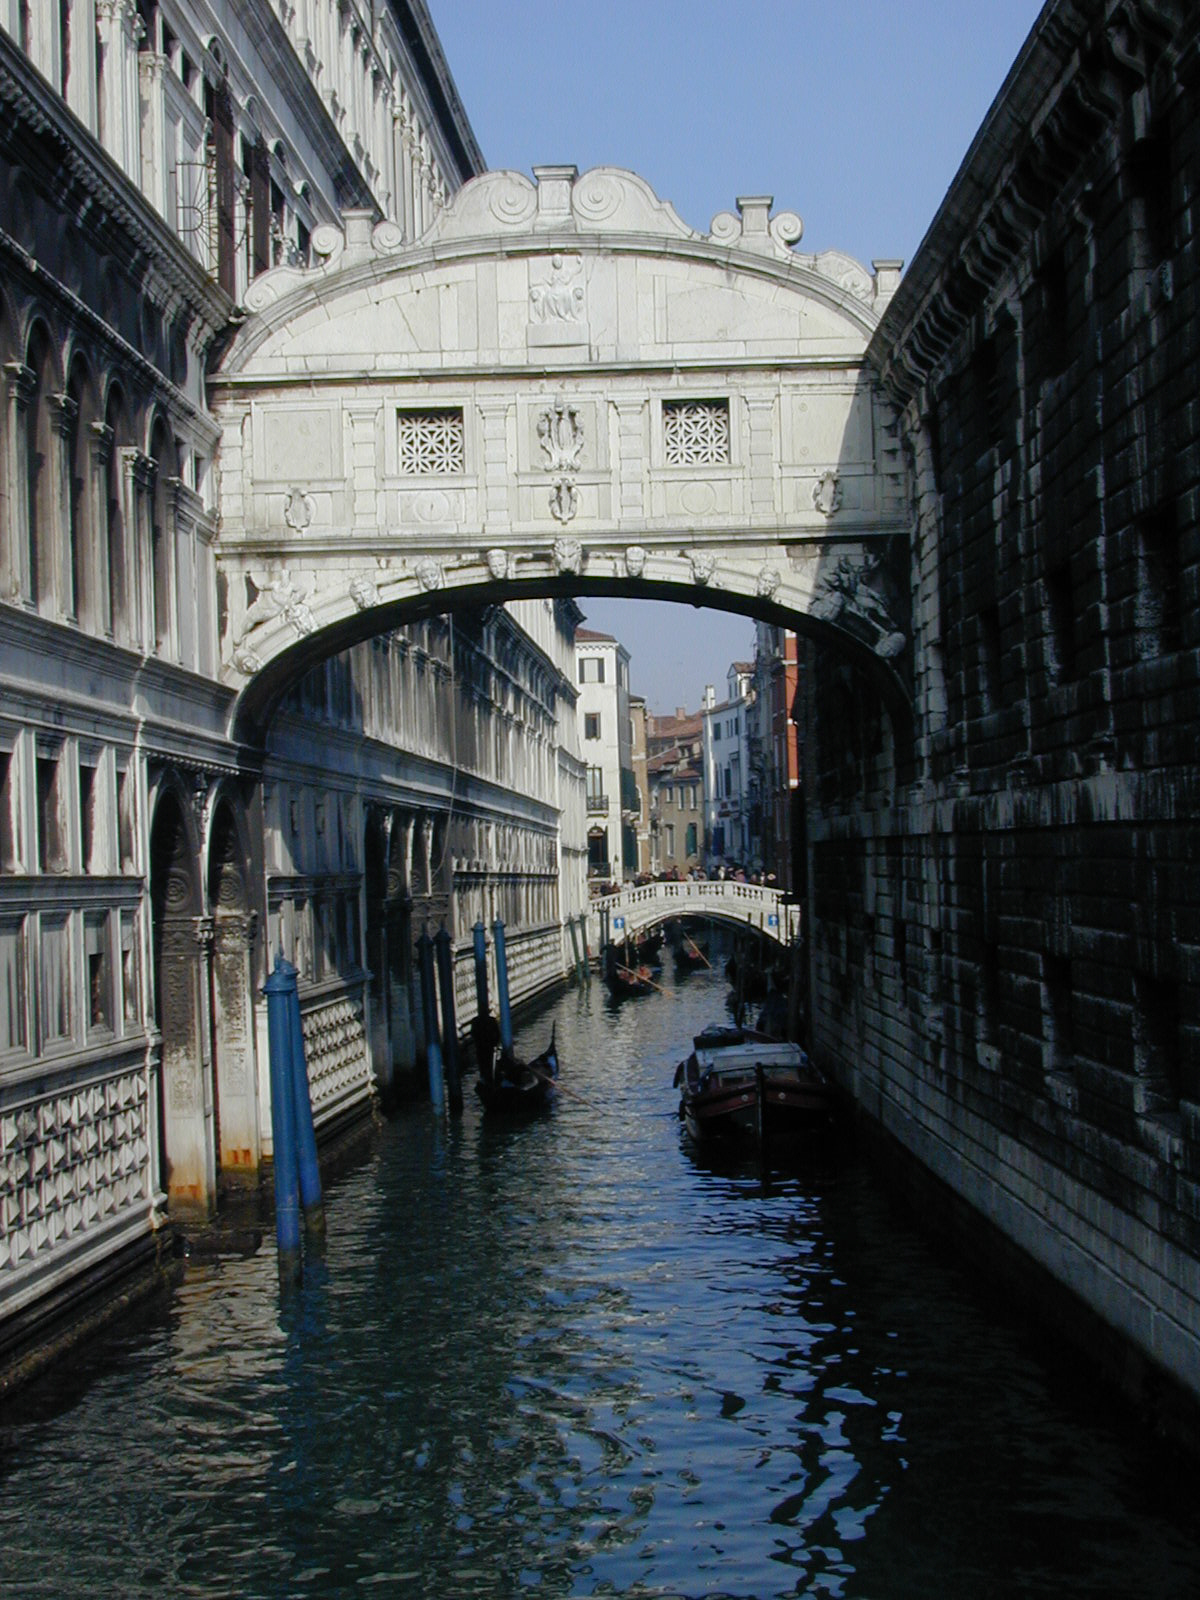 https://i0.wp.com/upload.wikimedia.org/wikipedia/commons/7/76/Venedig_Seufzerbr%C3%BCcke.jpg